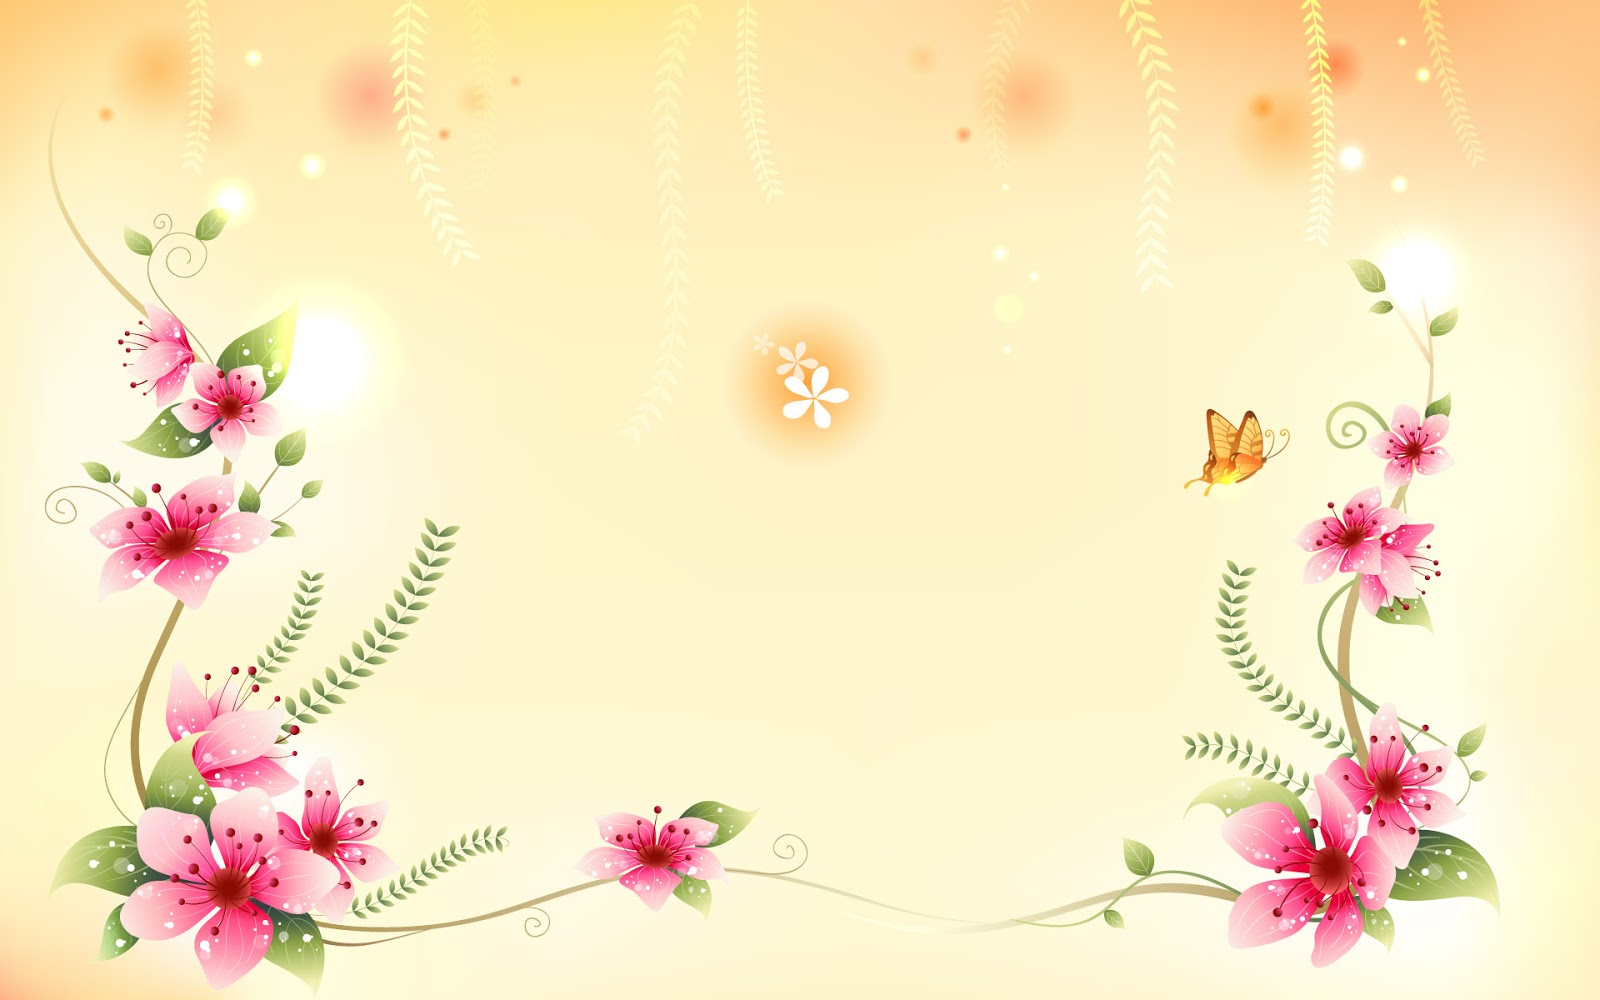 Red Flowers in Full Bloom a Lovely Butterfly is Around Setting is Light Orange What a Wonderful World Cartoon Flowers Wallpaper